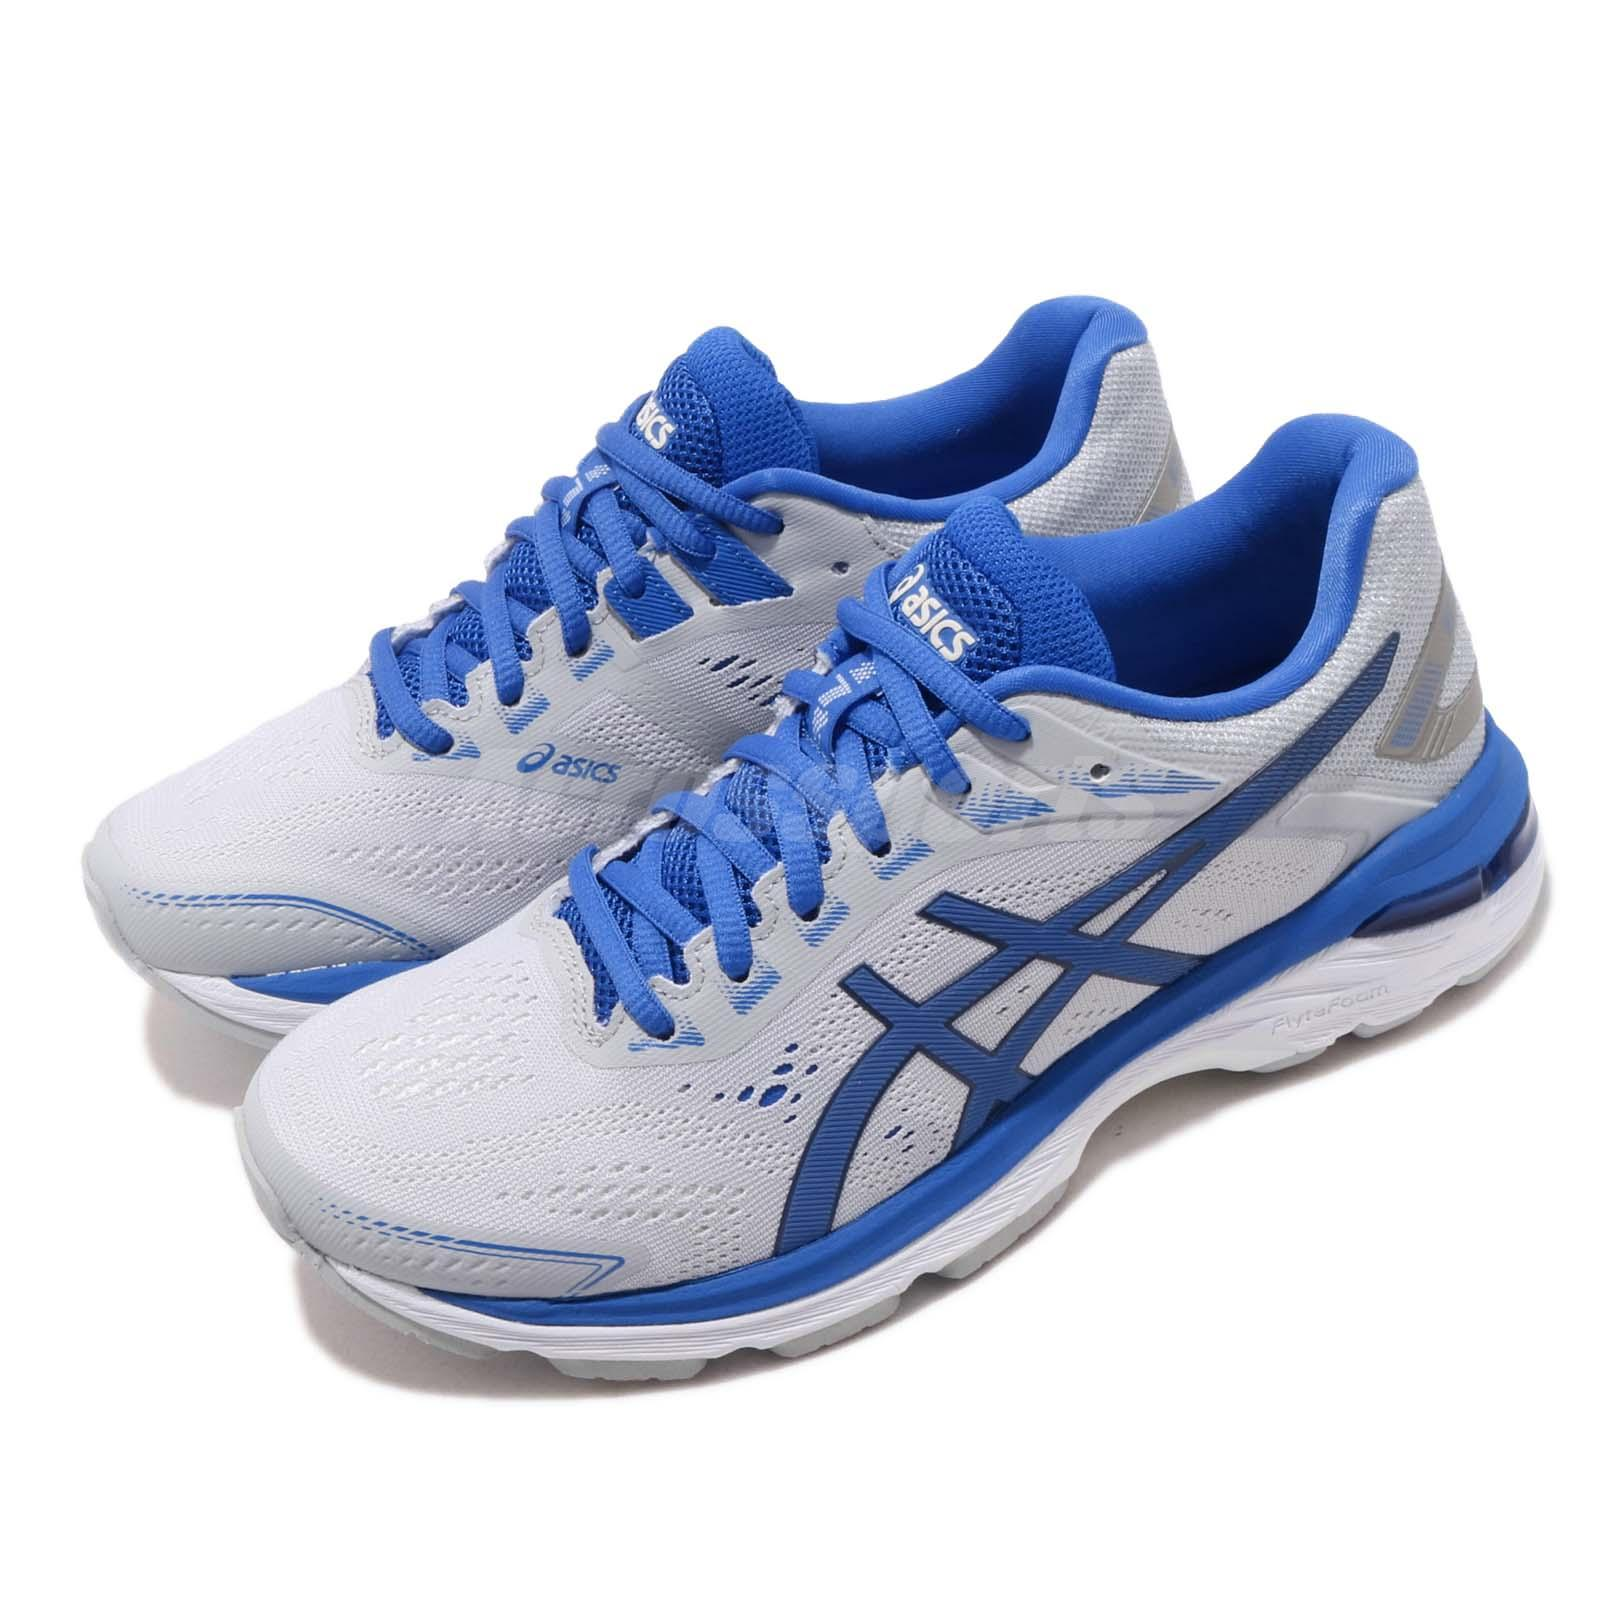 Details about Asics GT2000 7 Lite Show Grey Blue Women Running Shoes Sneakers 1012A186 020